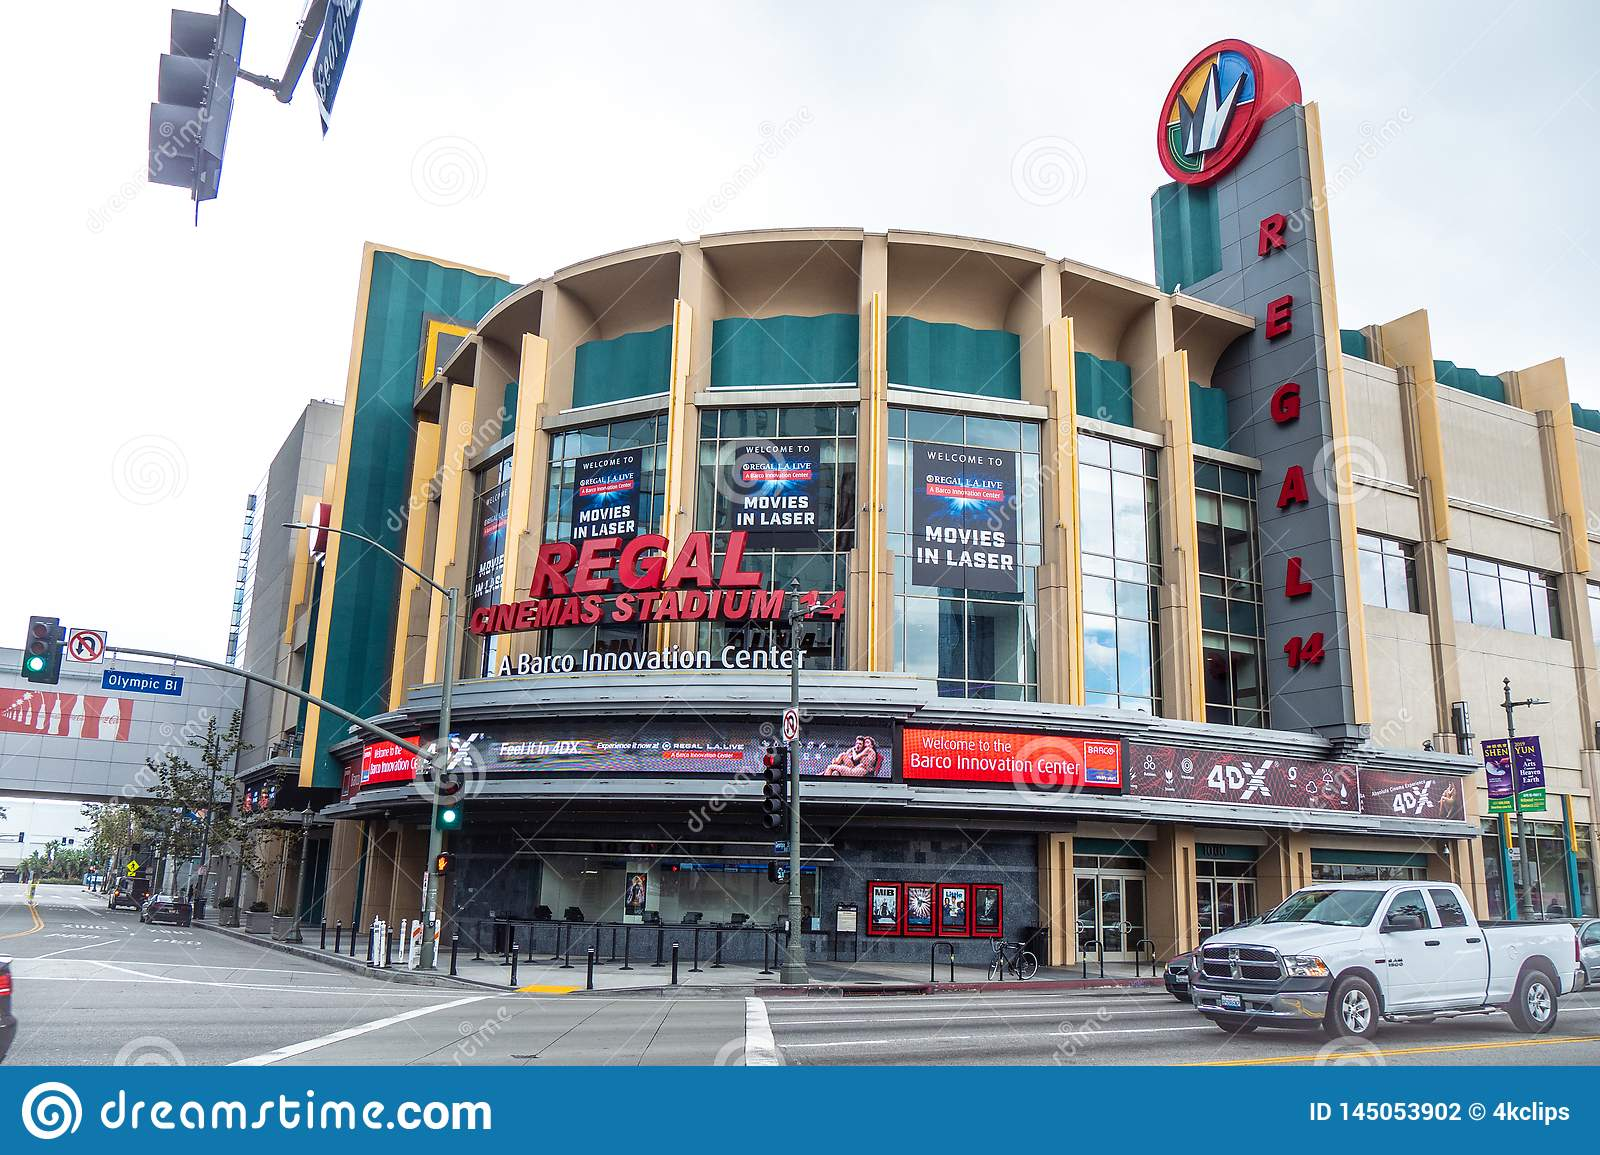 Regal Cinemas Stadium At Los Angeles Downtown - CALIFORNIA, USA